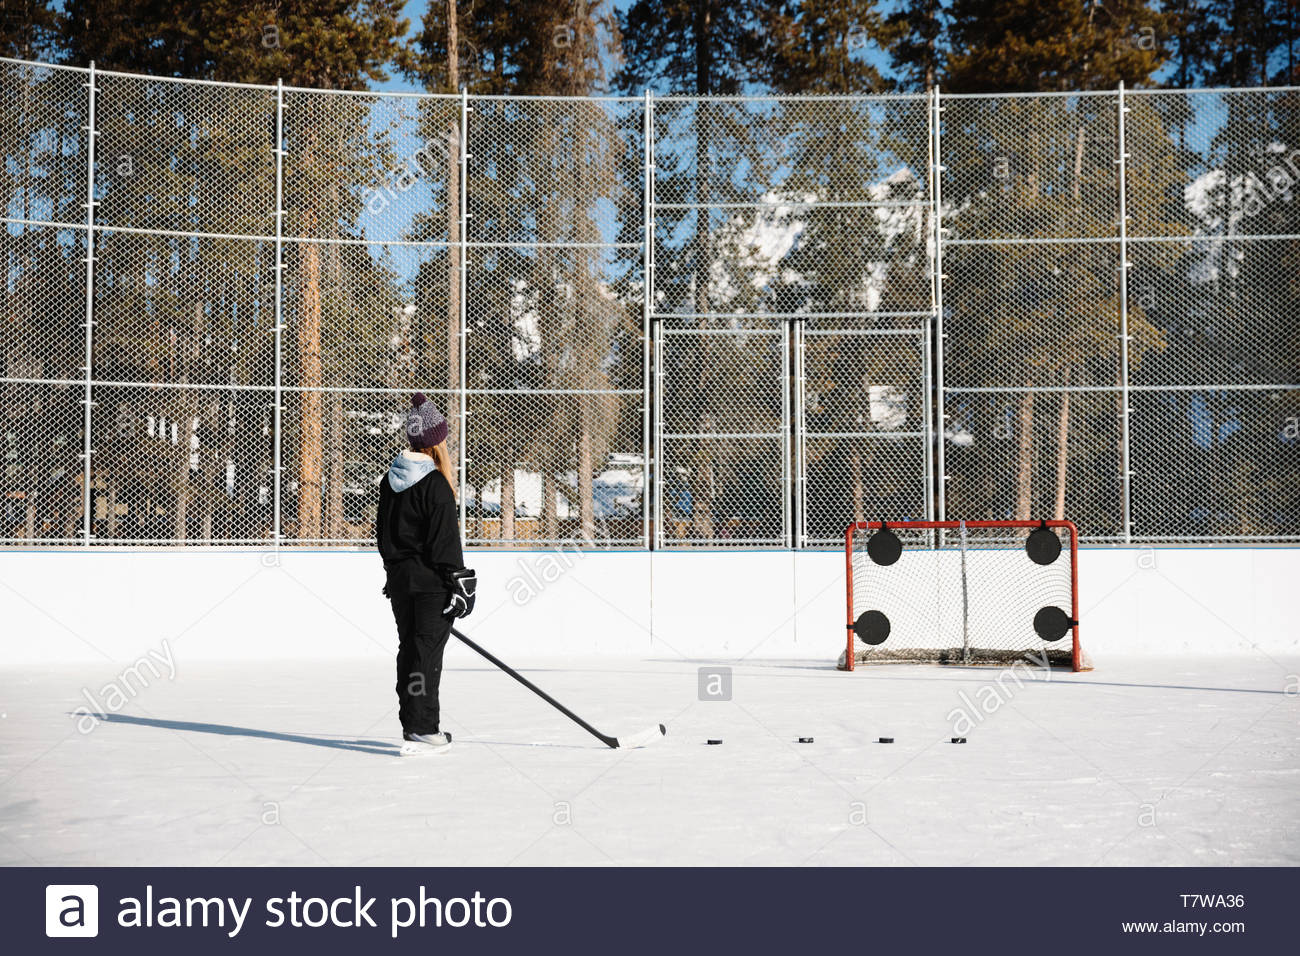 Woman playing outdoor ice hockey, practicing penalty shots - Stock Image